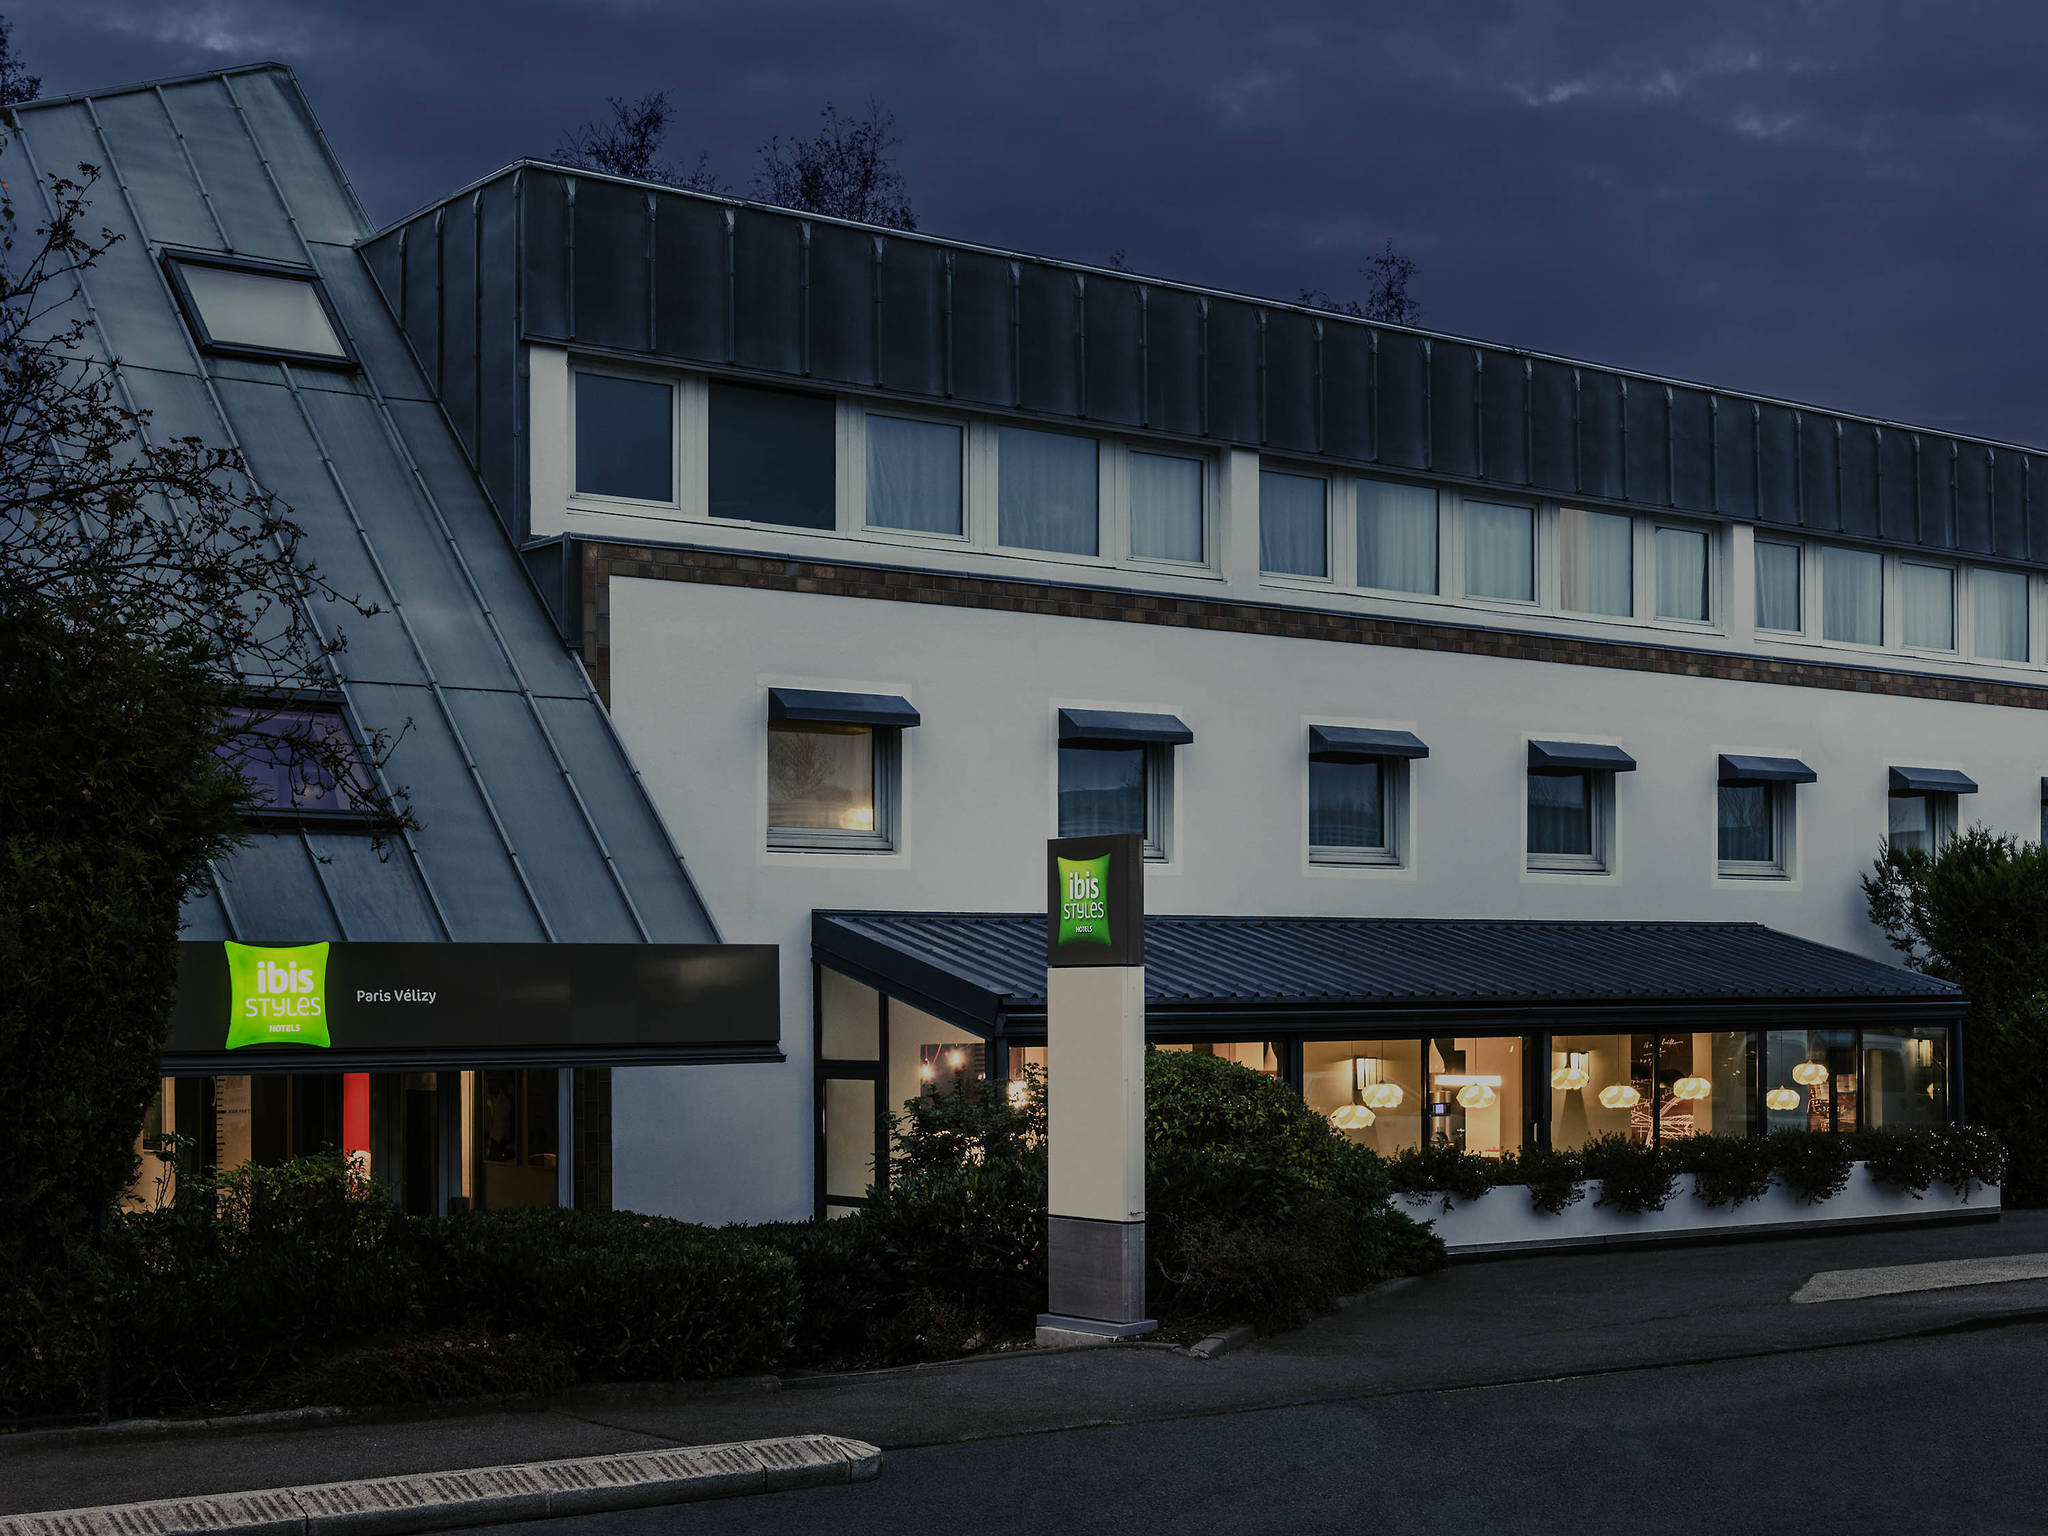 Appart hotel velizy great rue christophe colomb massy for Appart hotel ibis